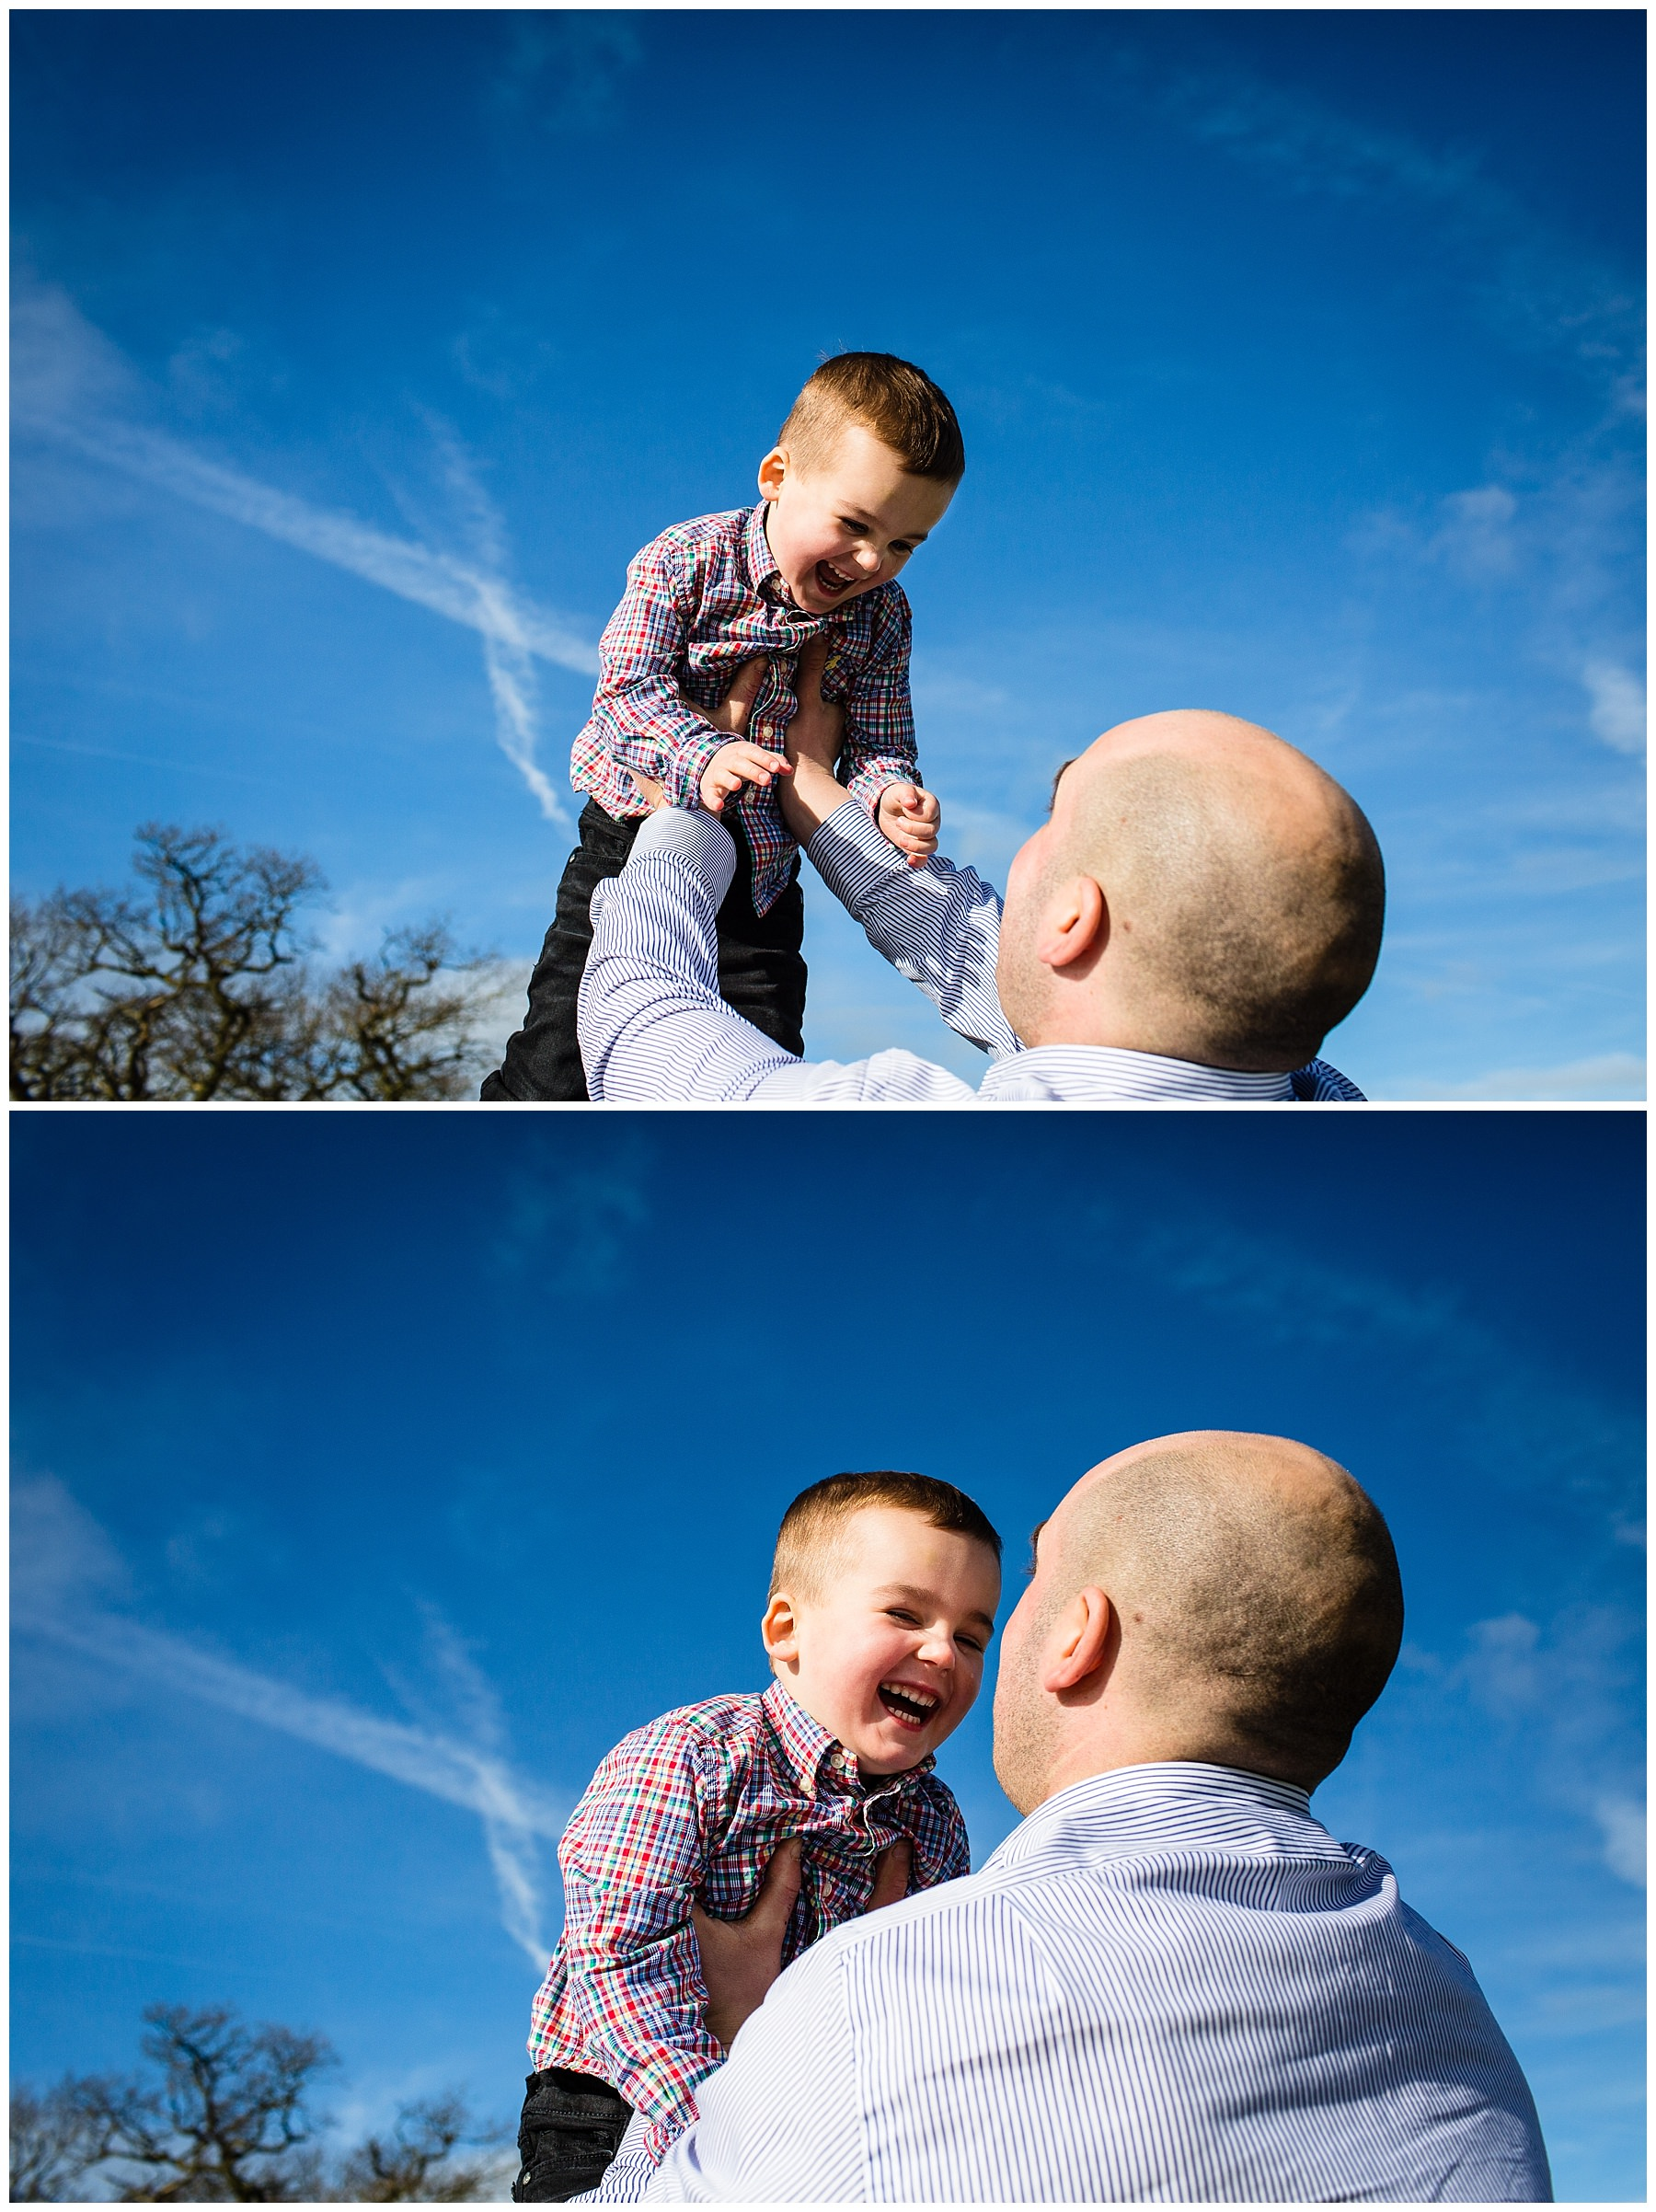 dad throwing a very excited little boy in the air with brilliant blue sky in the background - cheshire portrait photographer